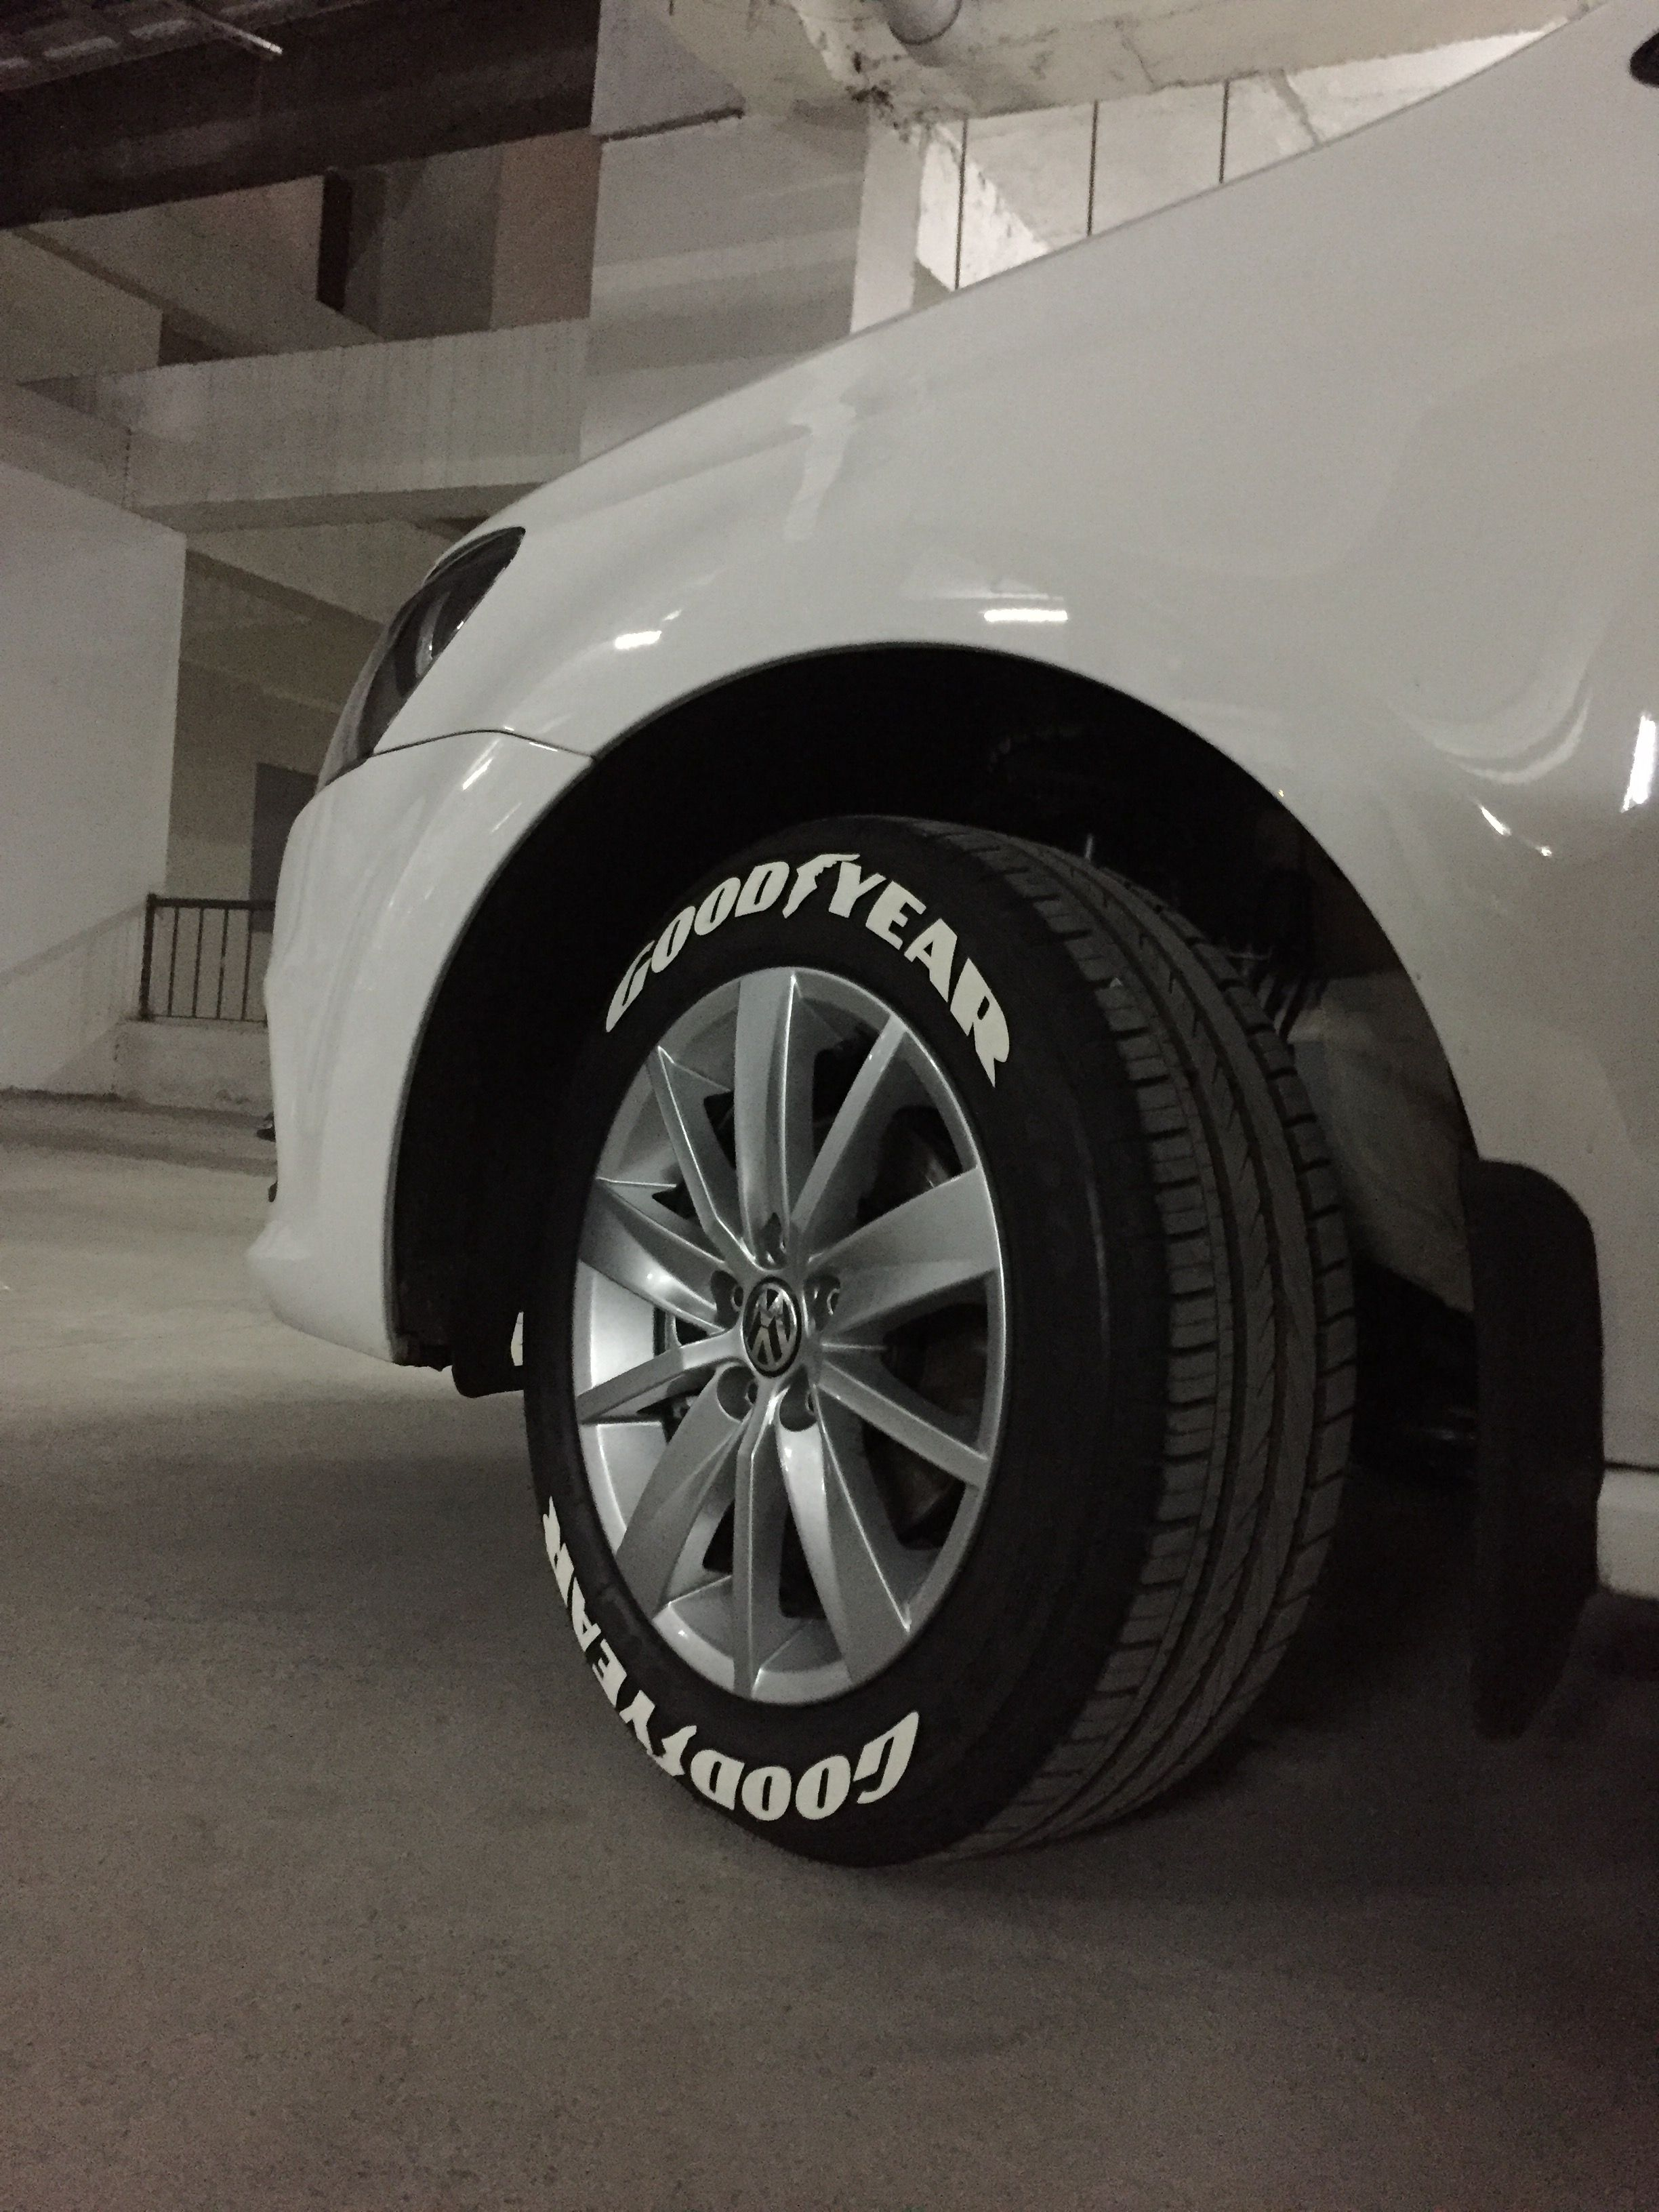 Goodyear tyre stickers available for all tyre sizes | Tyre lettering